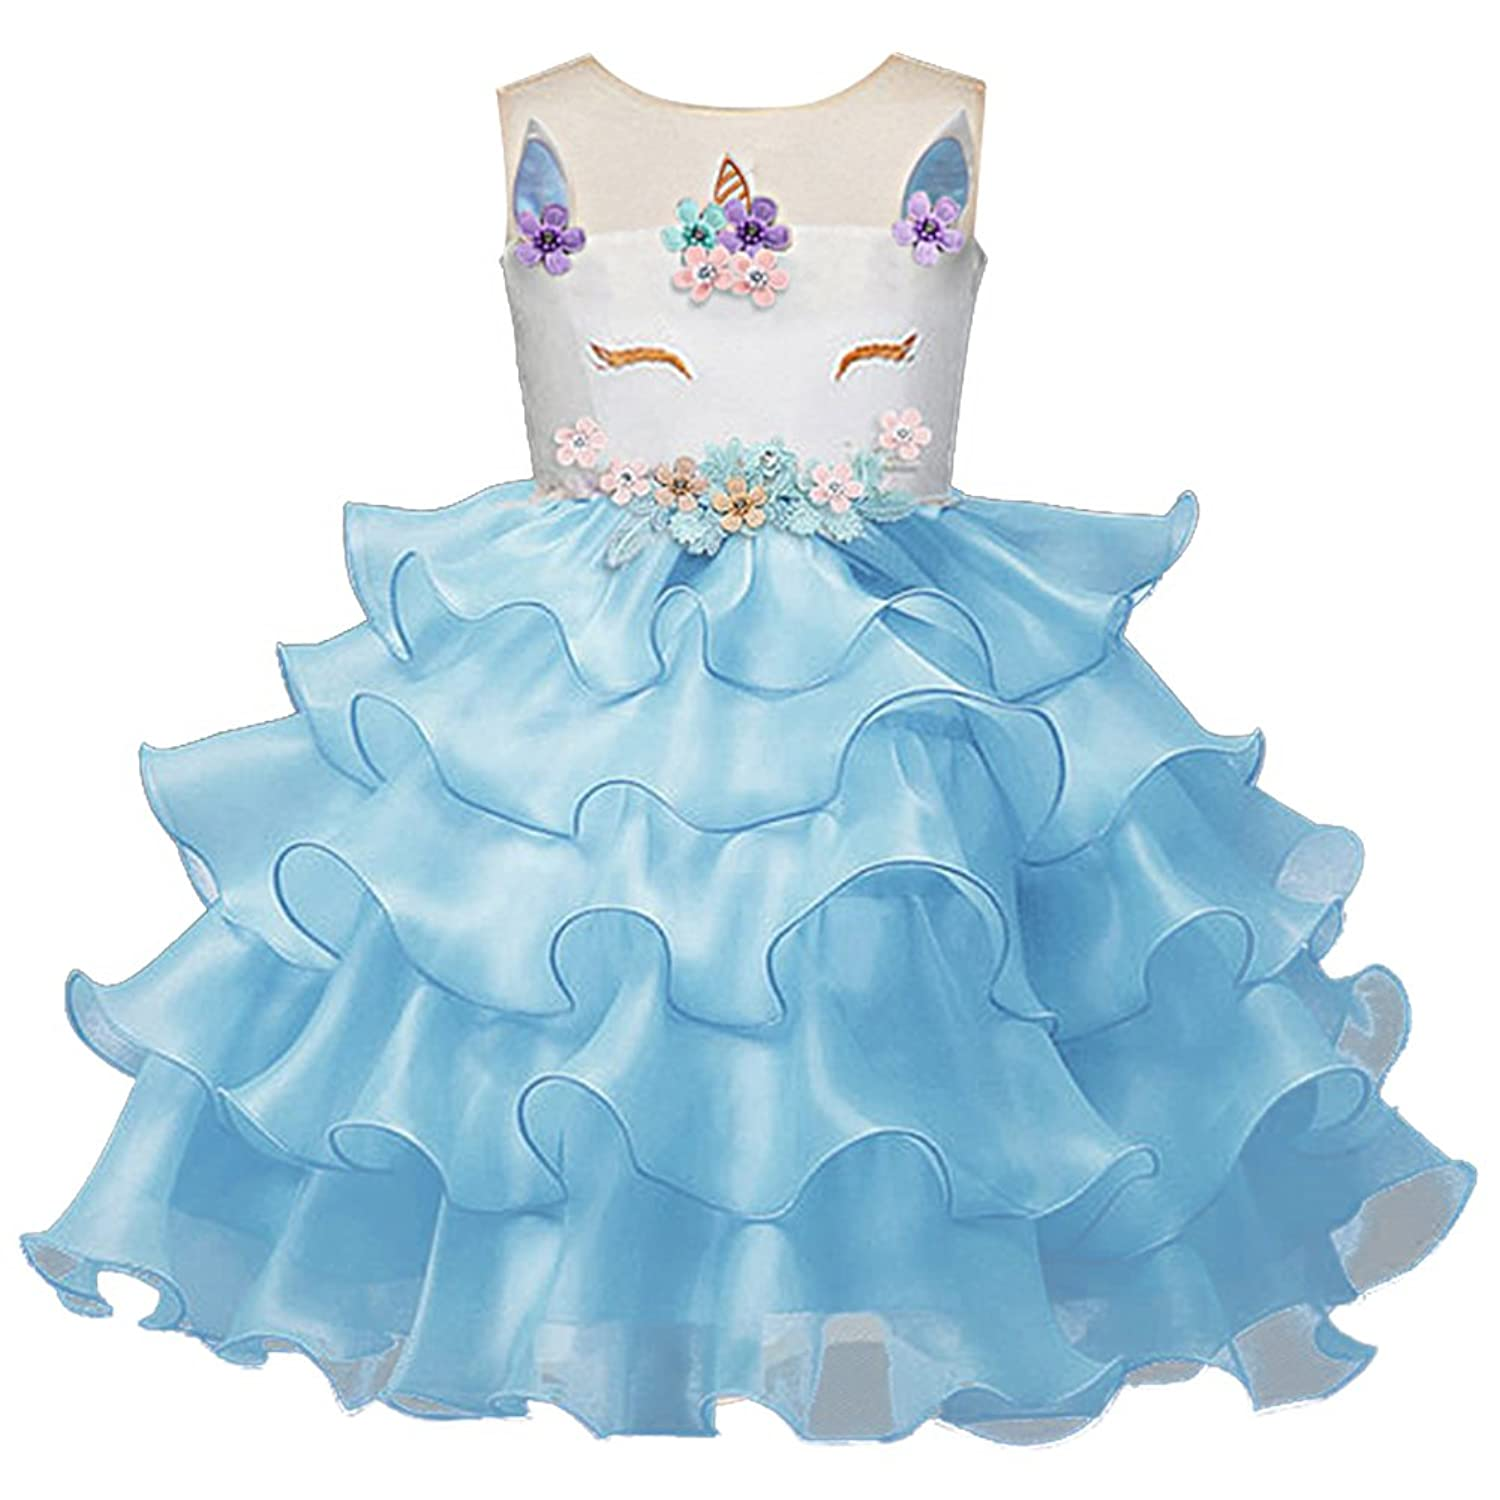 66b844a9668  Adorable Unicorn Costume Princess Dress Baby Toddler Kid Girls Sleeveless Unicorn  Cosplay Floral Bead Ruffle Tiered Tulle Dress